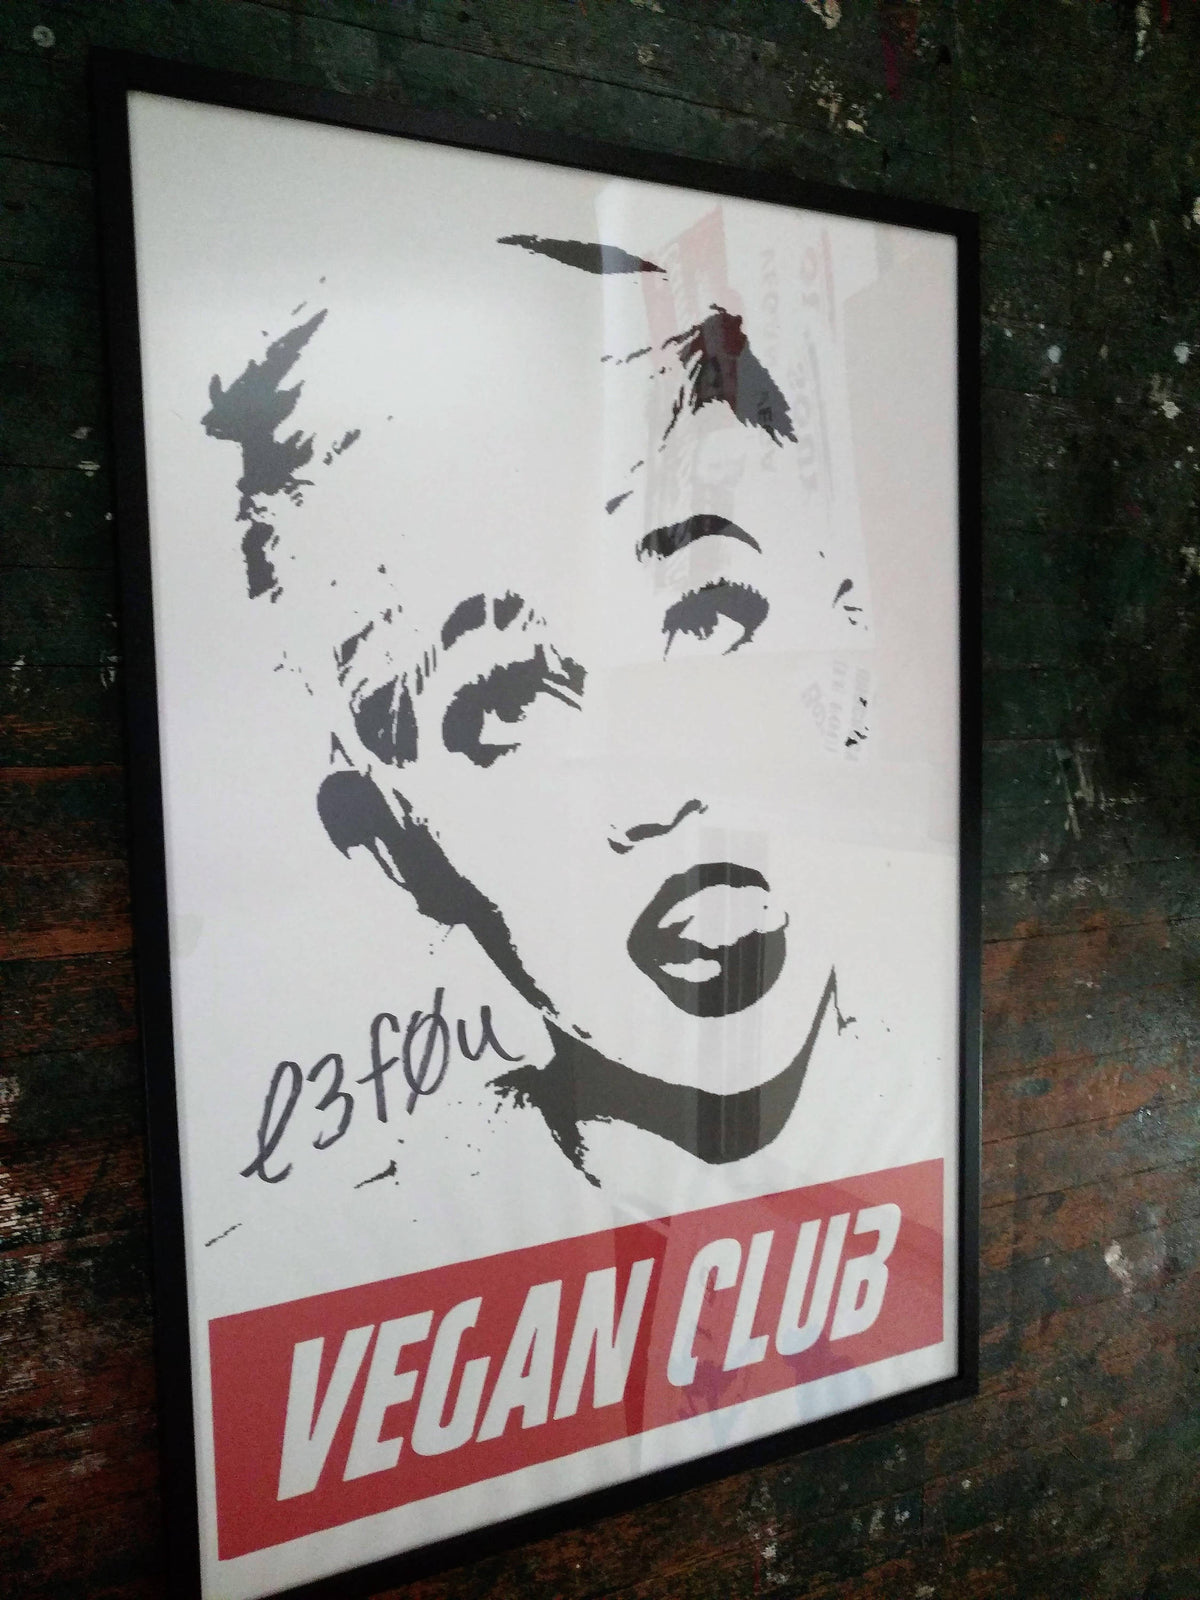 Framed on black wood Street Art NewsPrint Poster 24x36 Vegan Club featuring Miley Cyrus signed by LeFou - pic @street_art_los_angeles